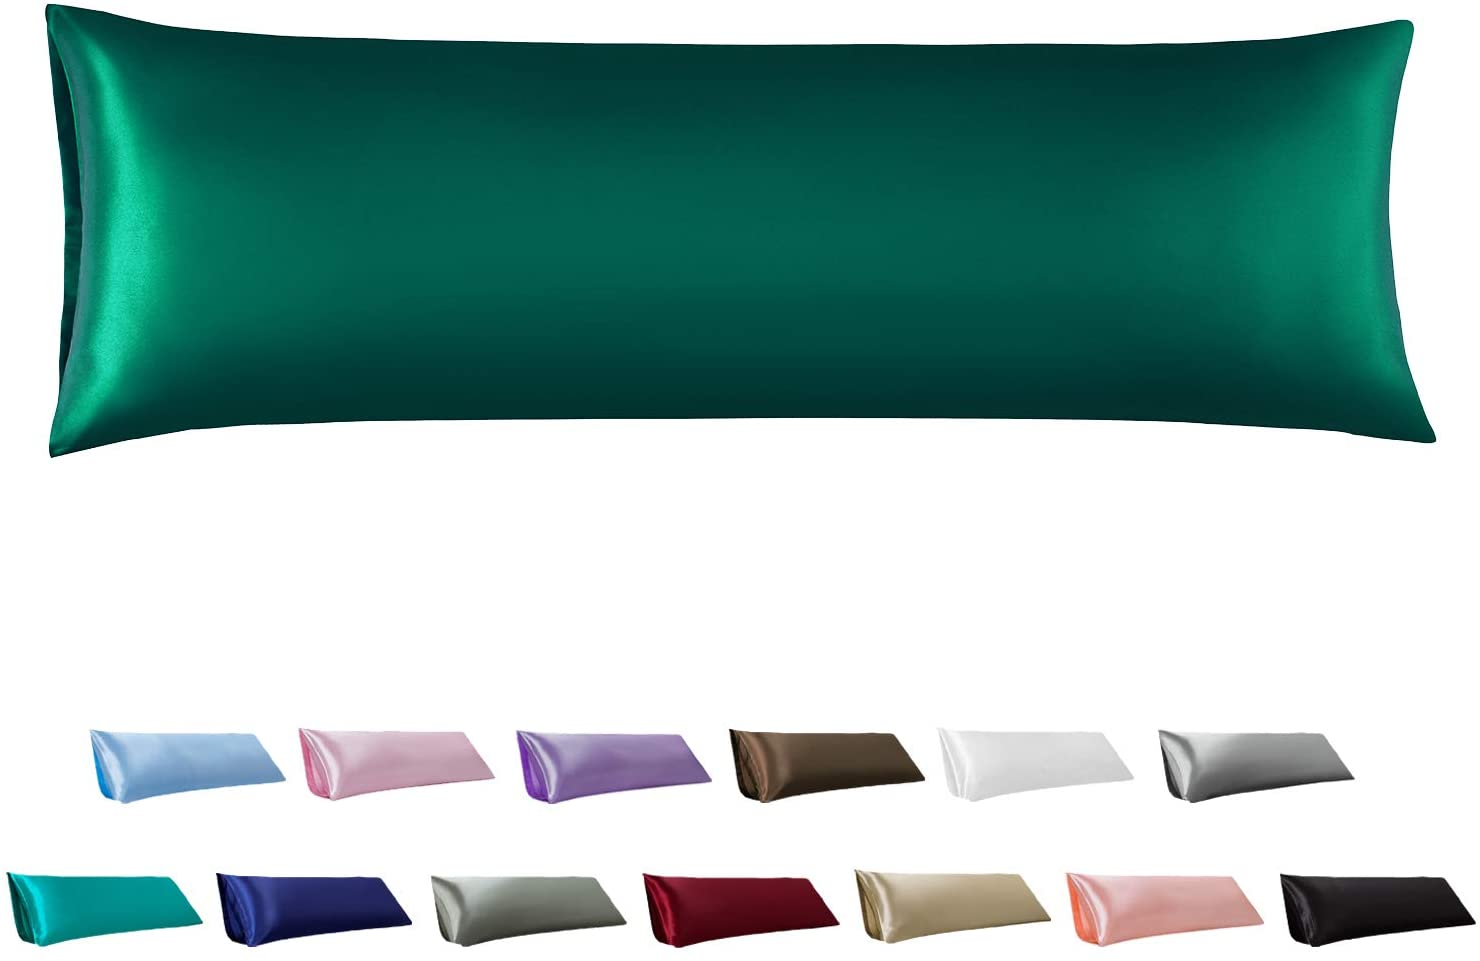 MR&HM Satin Body Pillow Cover 20x54 inches, Silky Slip Body Pillow Pillowcases No Zipper, Long Pillow Protector Covers with Envelope Closure for Adults Pregnant Woman (Dark Green)